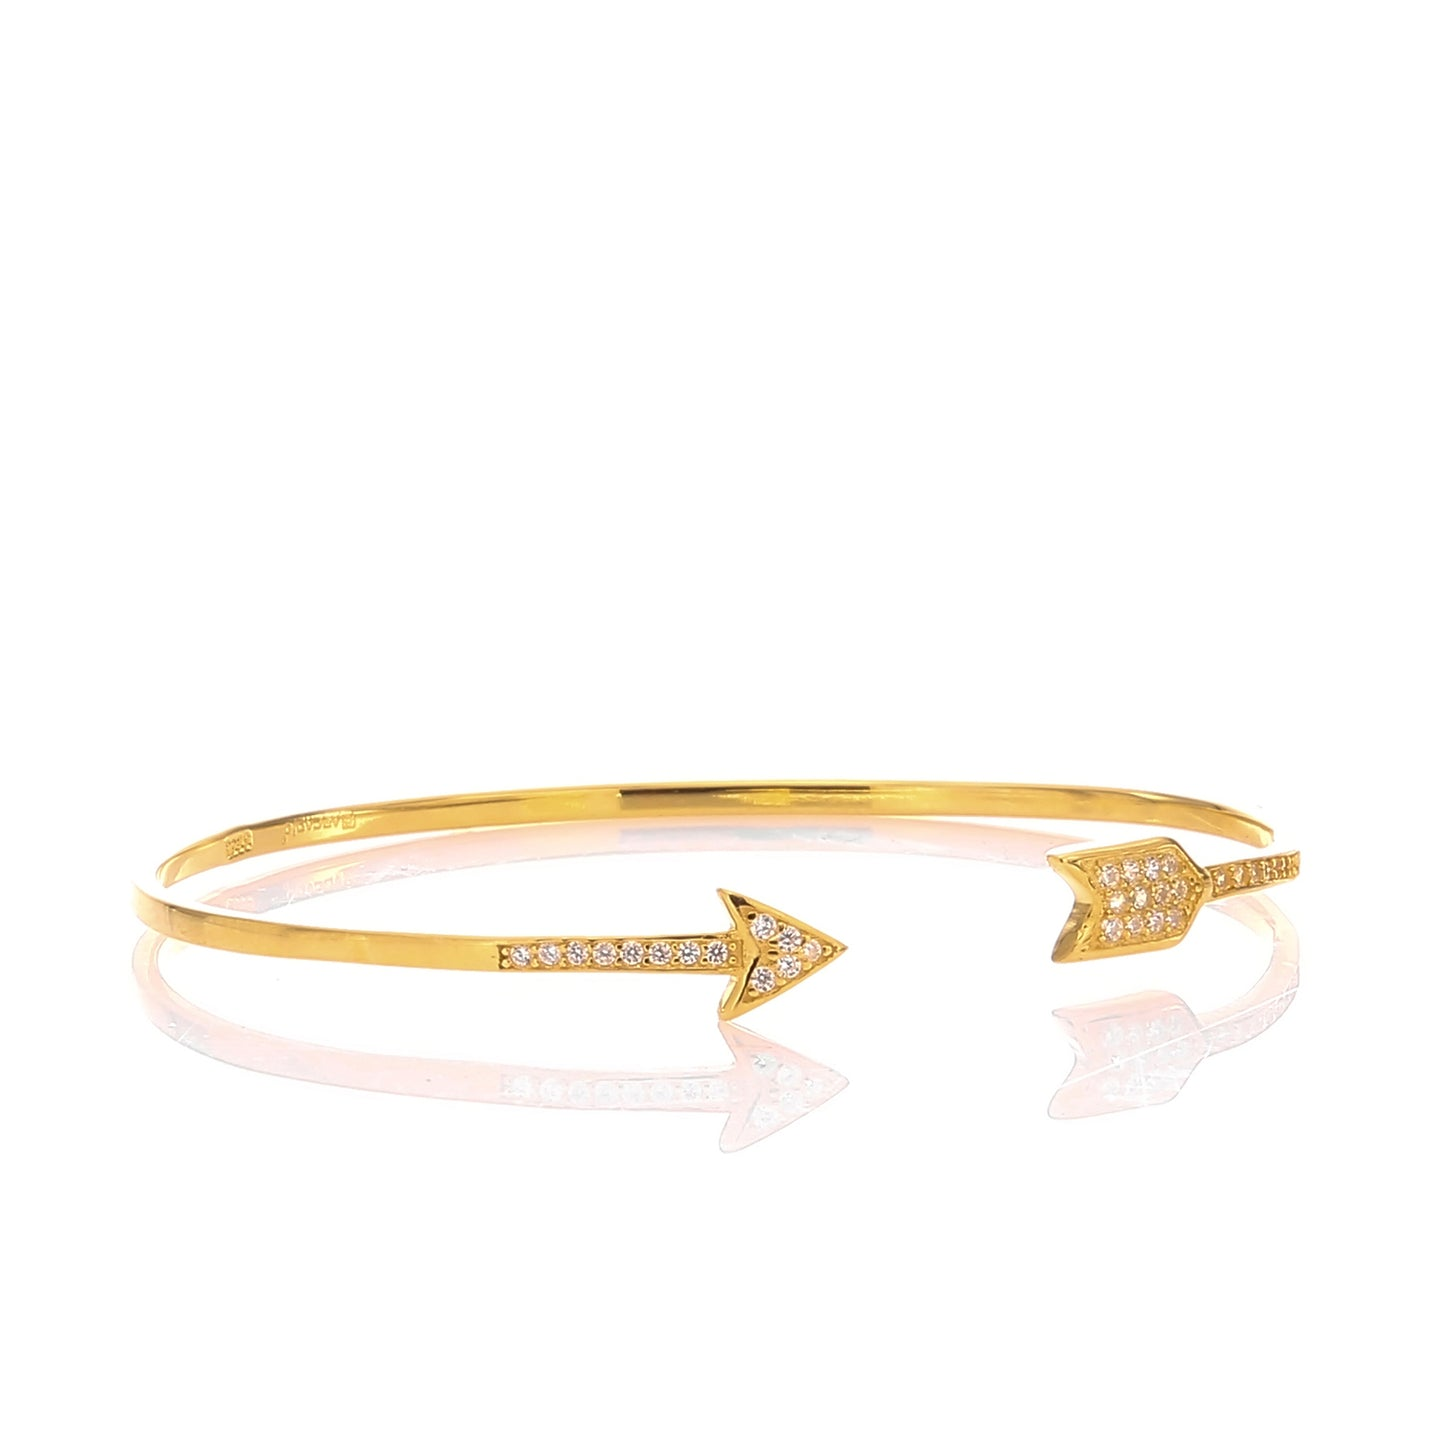 Hoops and Loops High Polished Arrow Wrap Cuff Bangle Bracelet - ARJWDB1059GD - ARCADIO LIFESTYLE